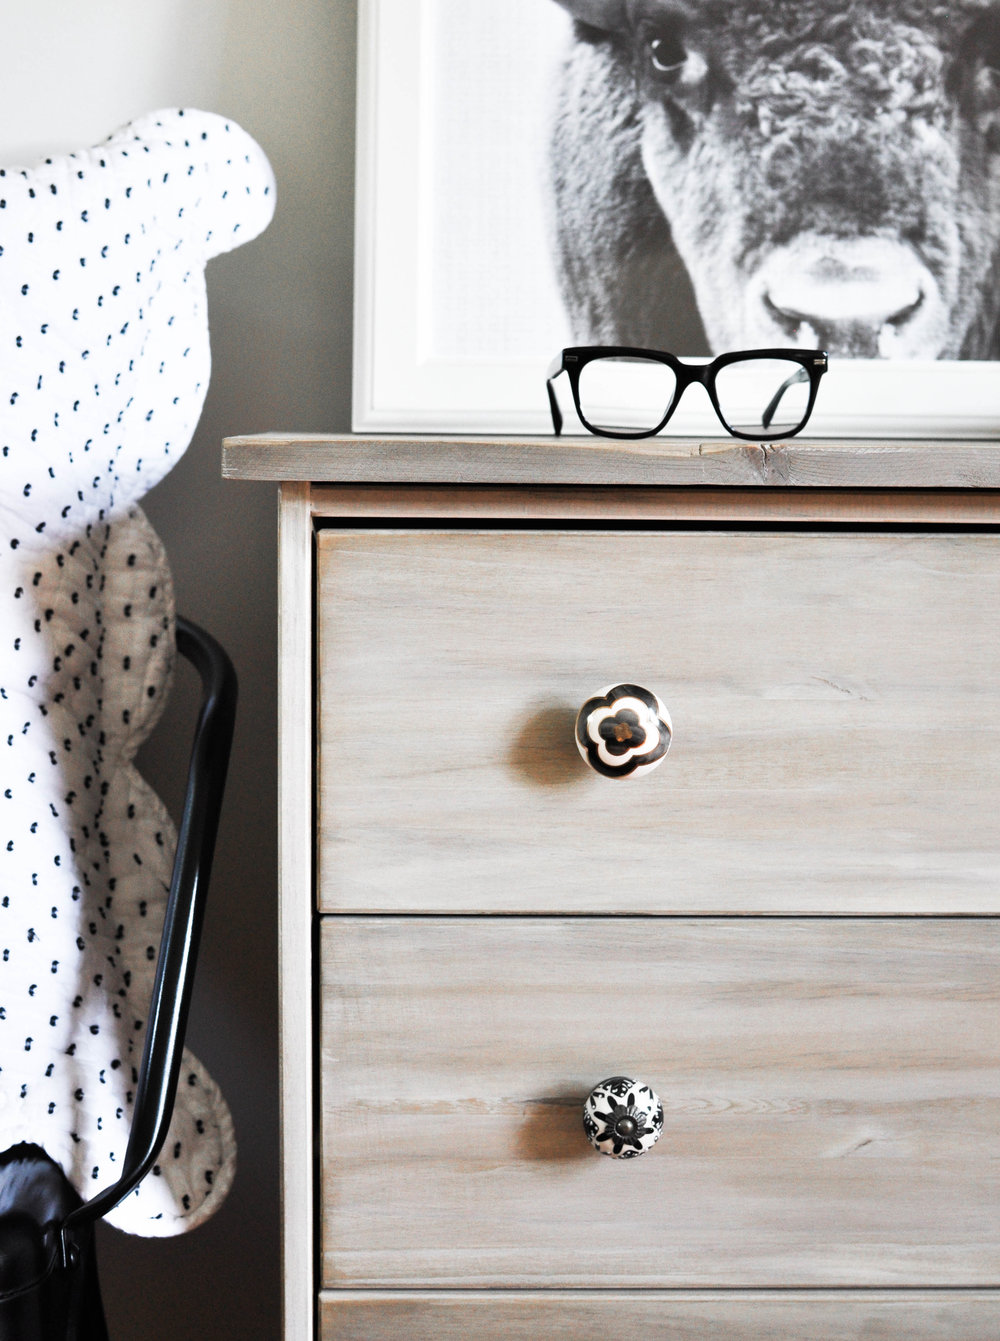 ikea nightstand with decorative knobs